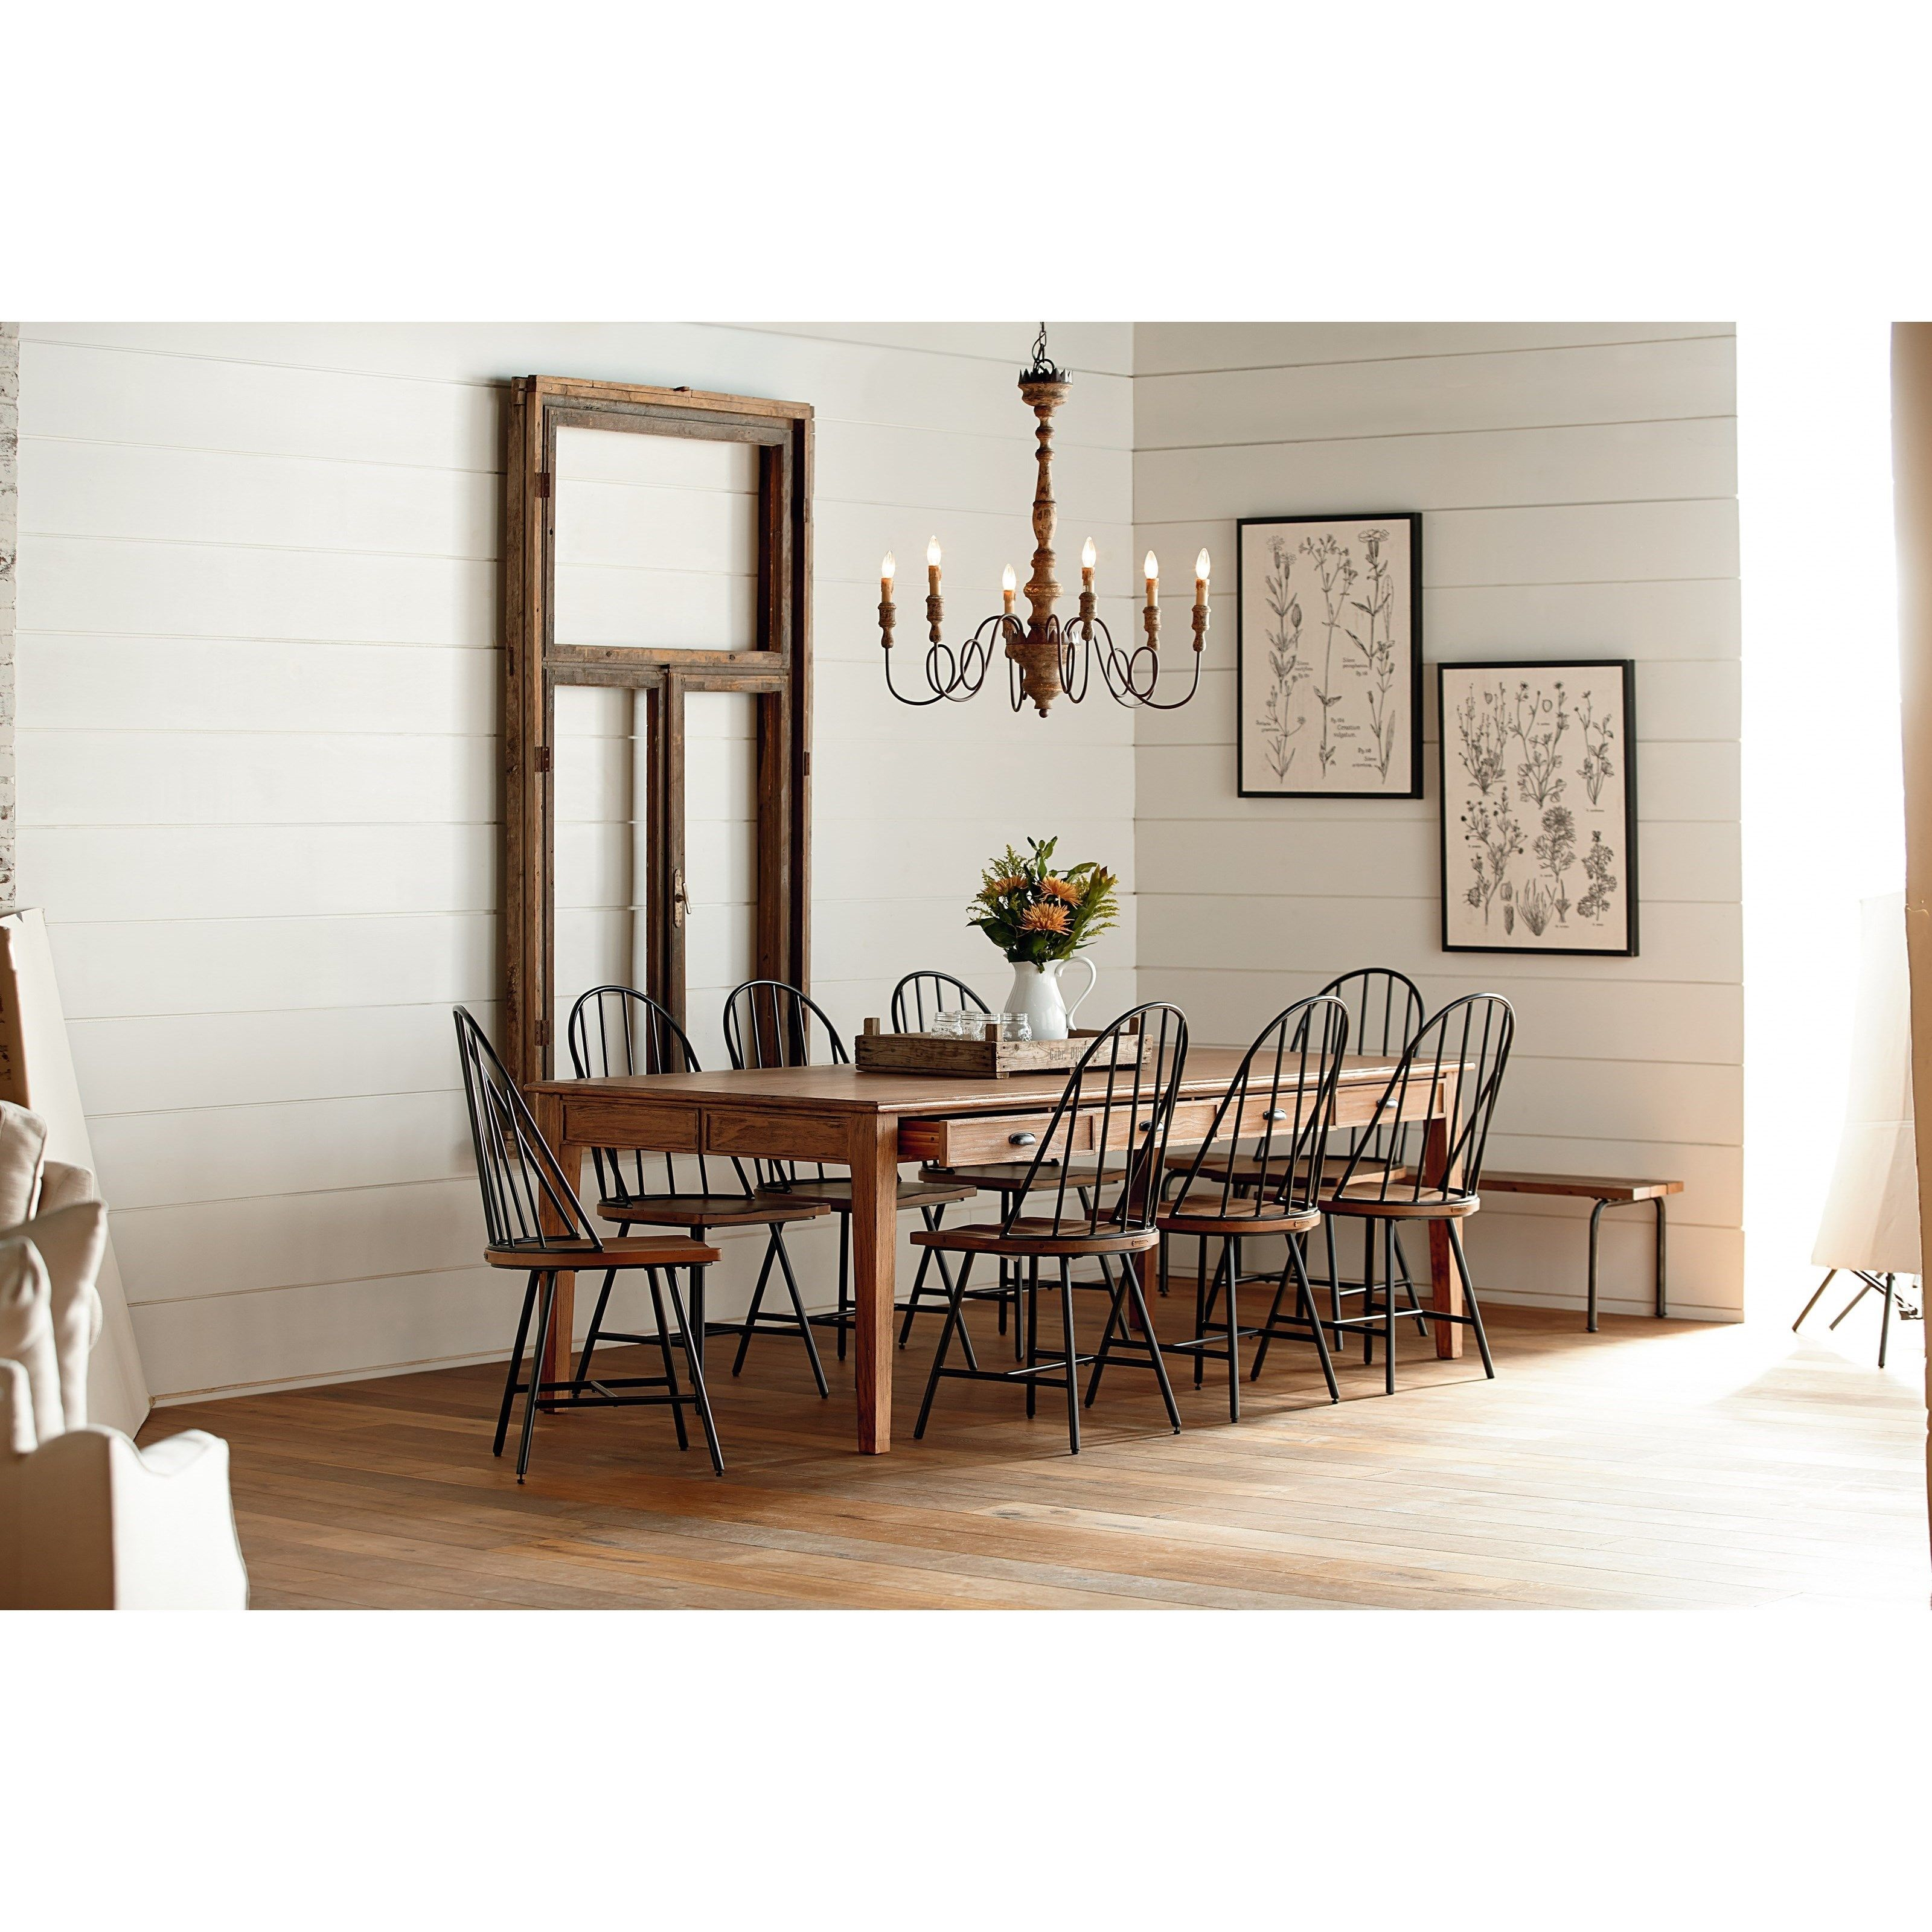 Farmhouse 10 Piece Dining Set with Hoop Windsor Chairs Bench and